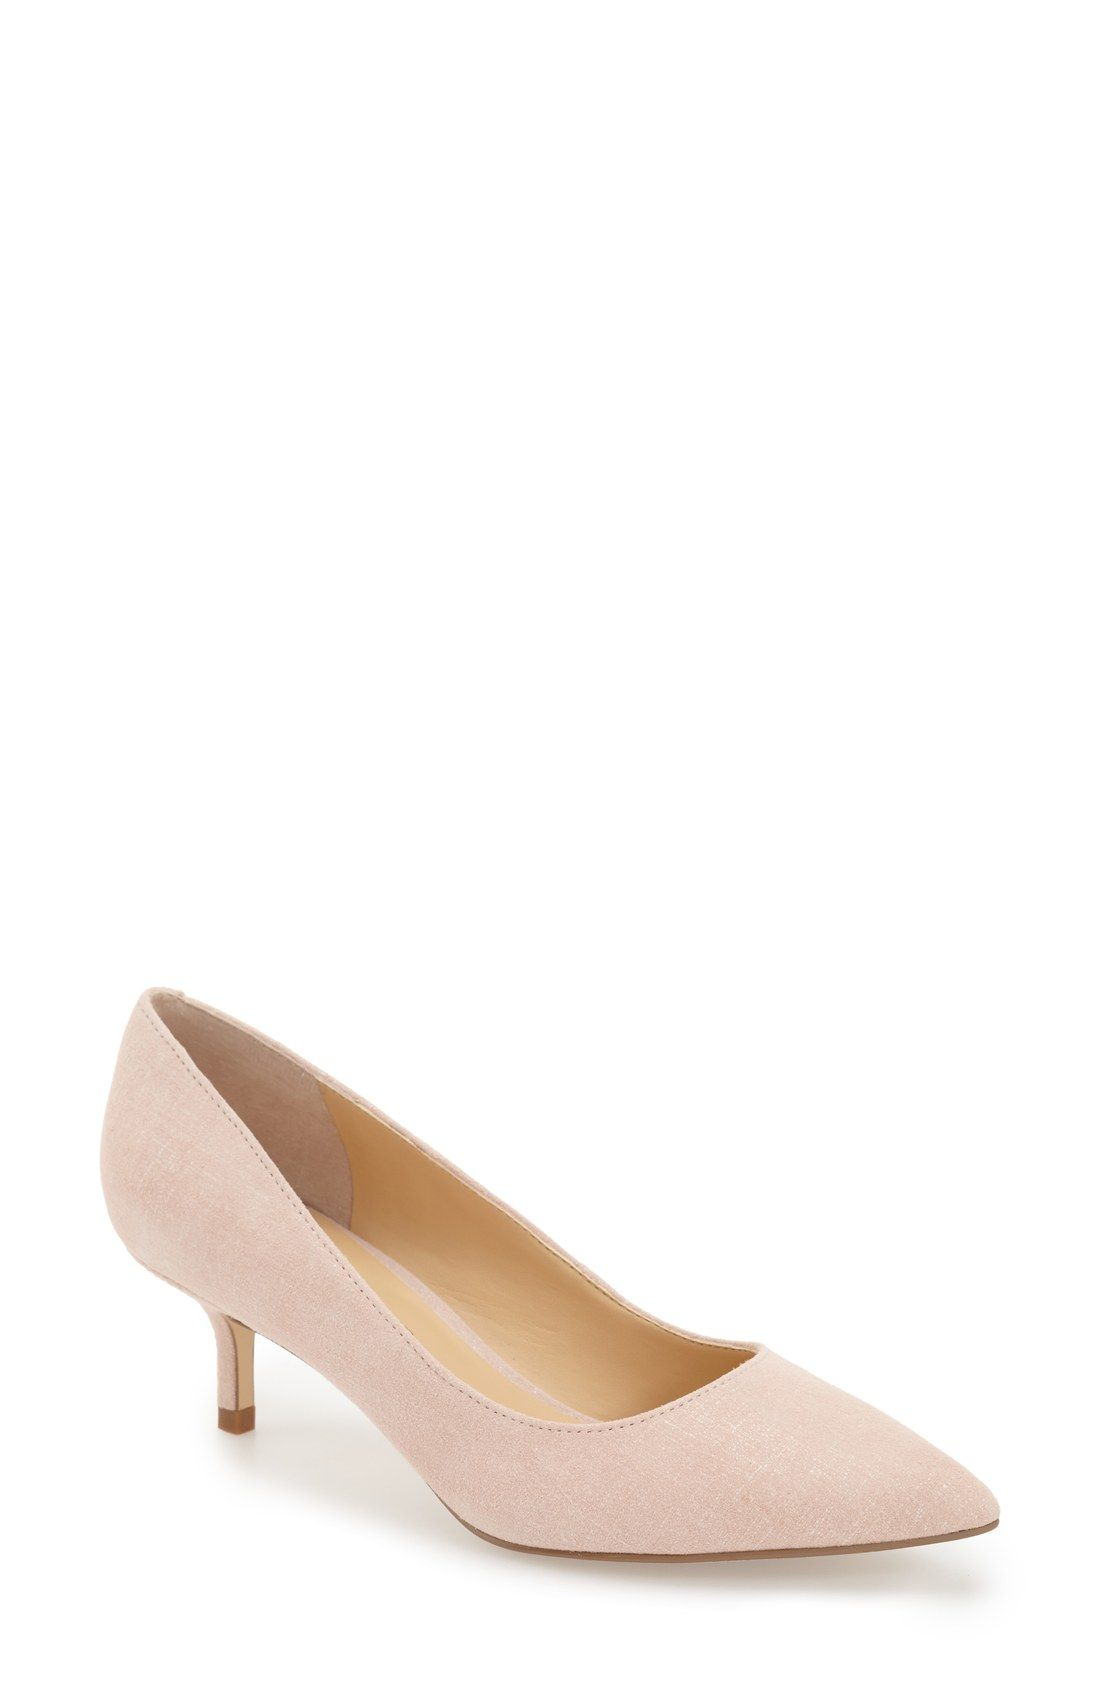 32ae4b1cf4 Ivanka Trump 'Athyna' Kitten Heel Pump (Women) | Wedding - Blush and ...